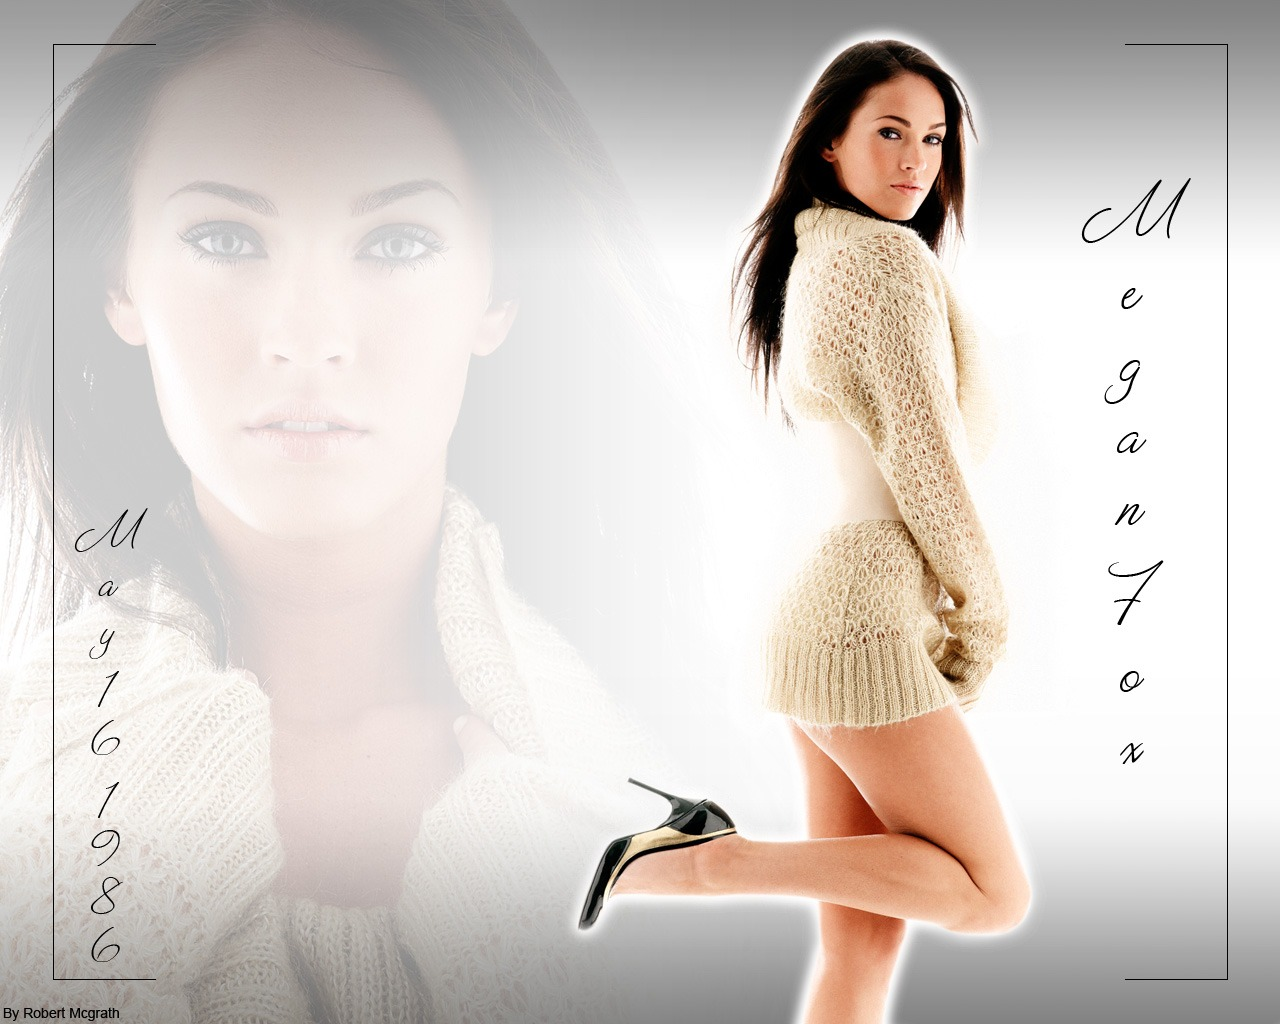 hot model megan fox 1280x1024 wallpaper